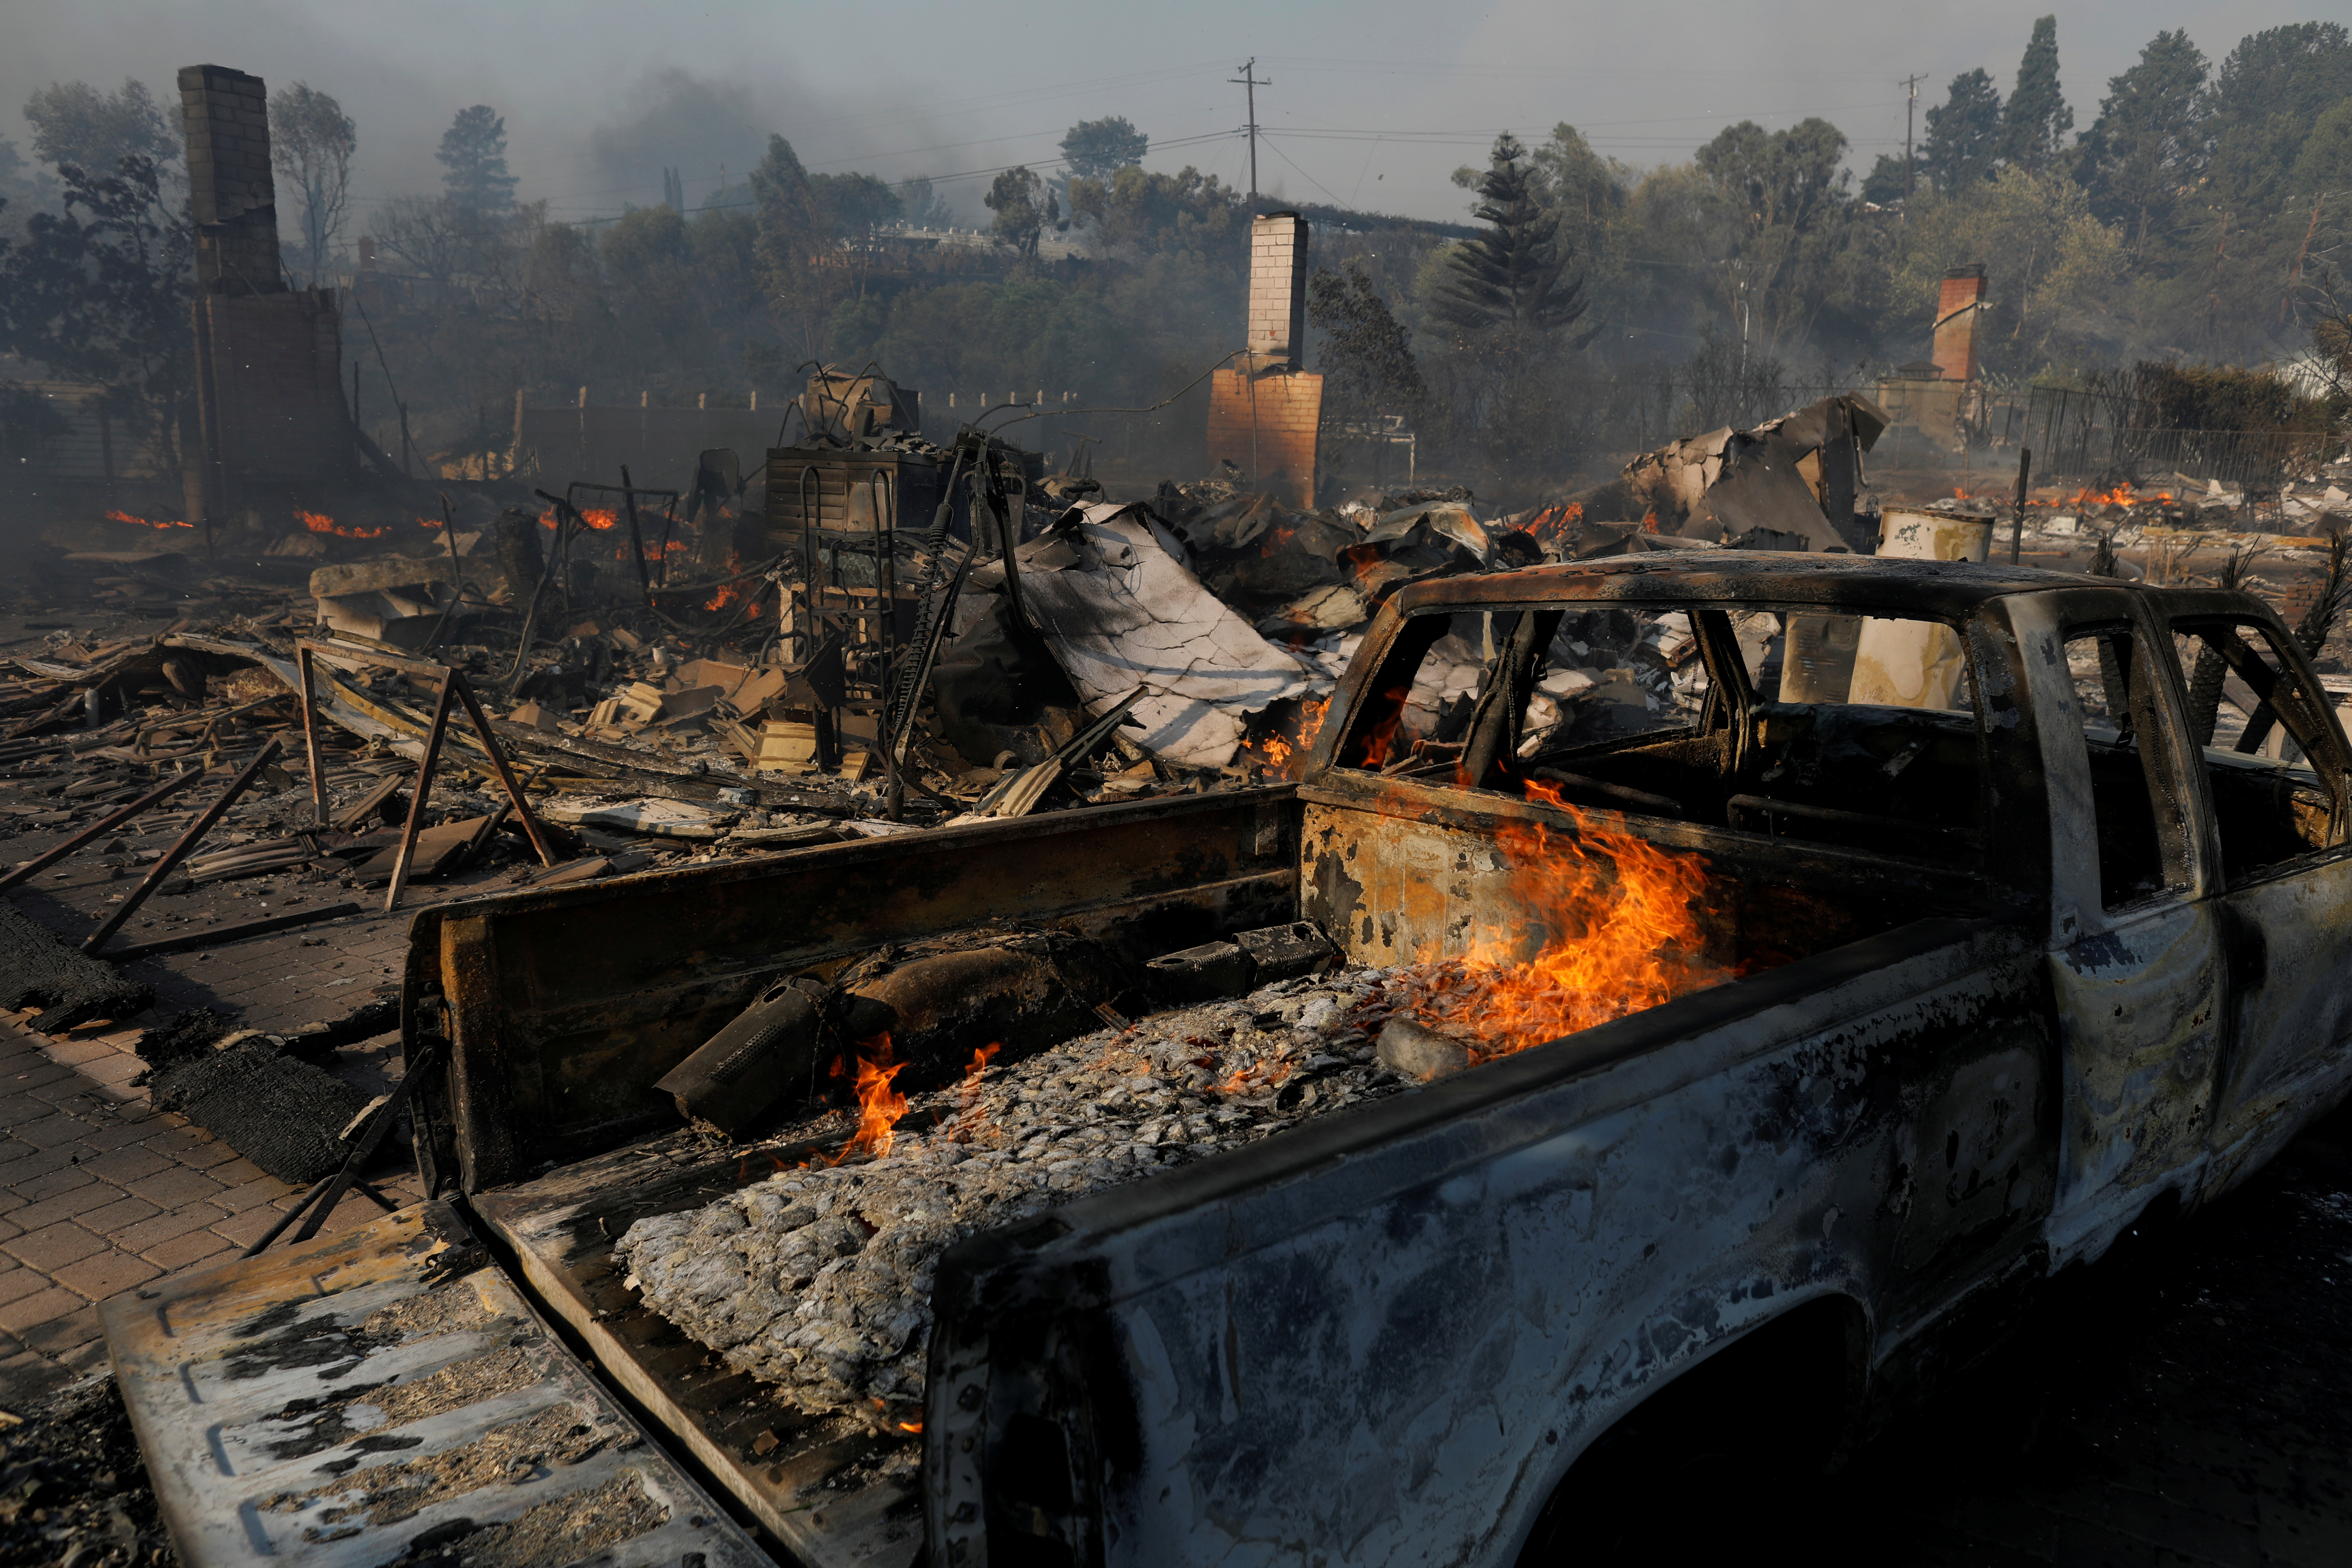 A home's remains are seen, next to a burnt out truck, after they were destroyed, during a wind-driven wildfire in Ventura.